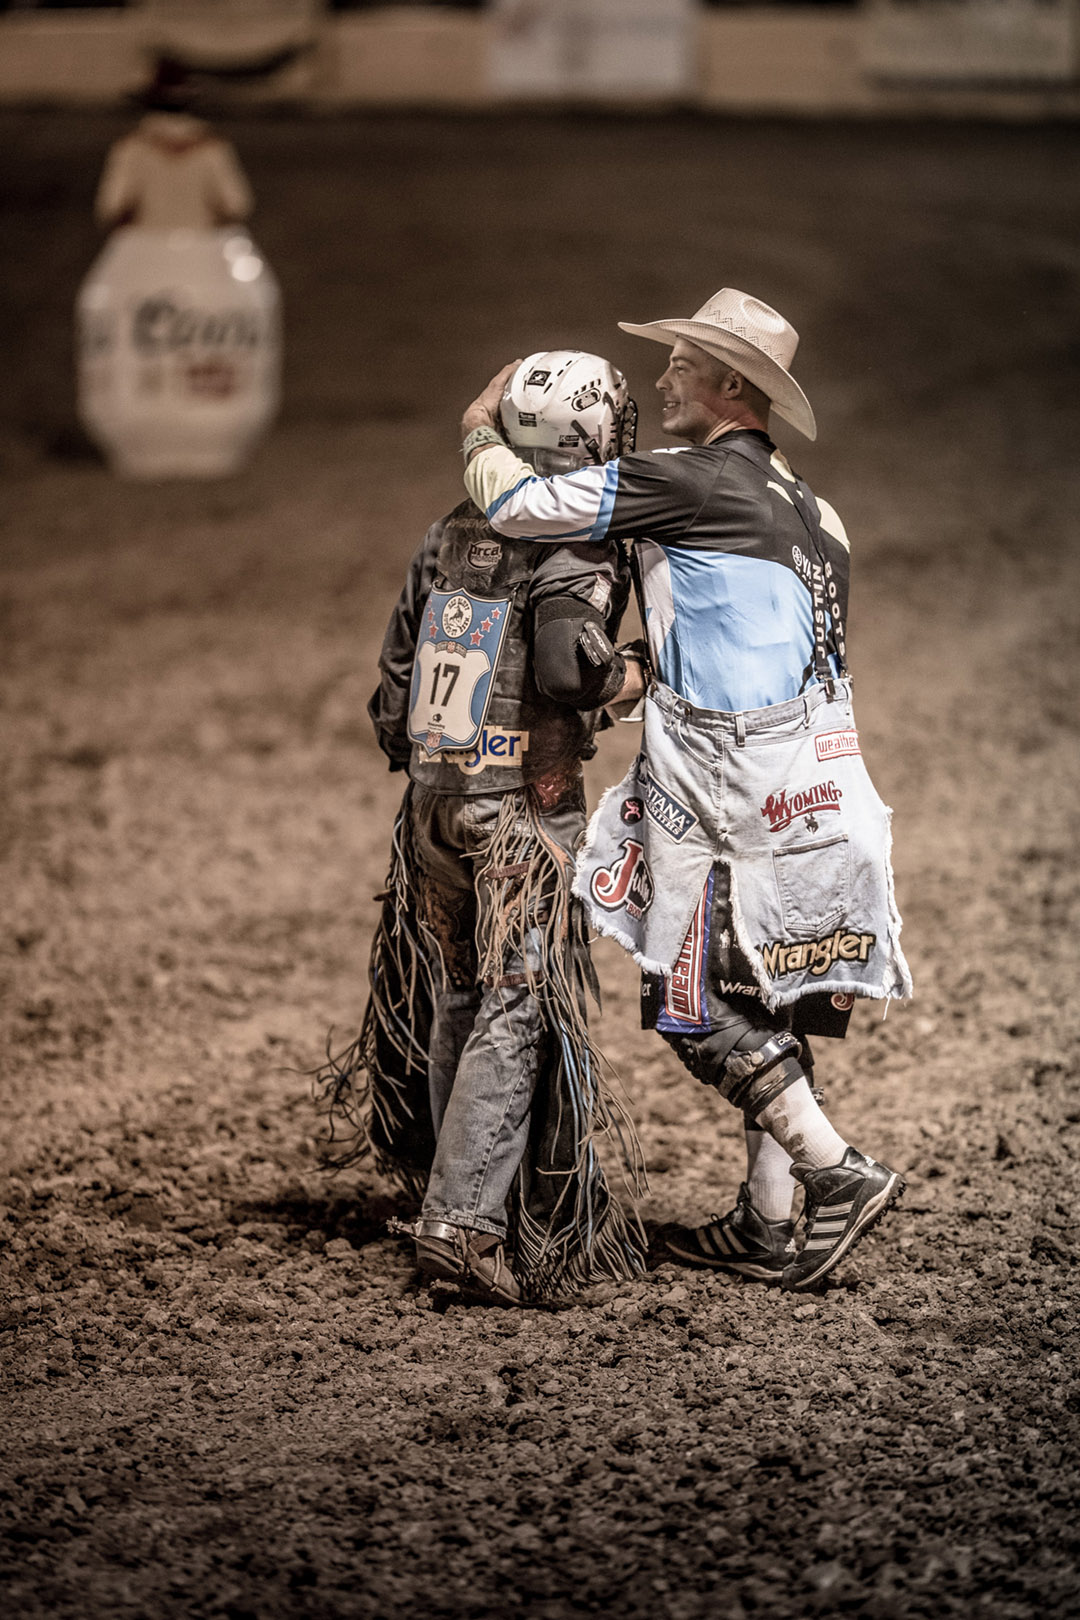 Rodeo Clown and Rodeo Athlete After Ride For Wrangler